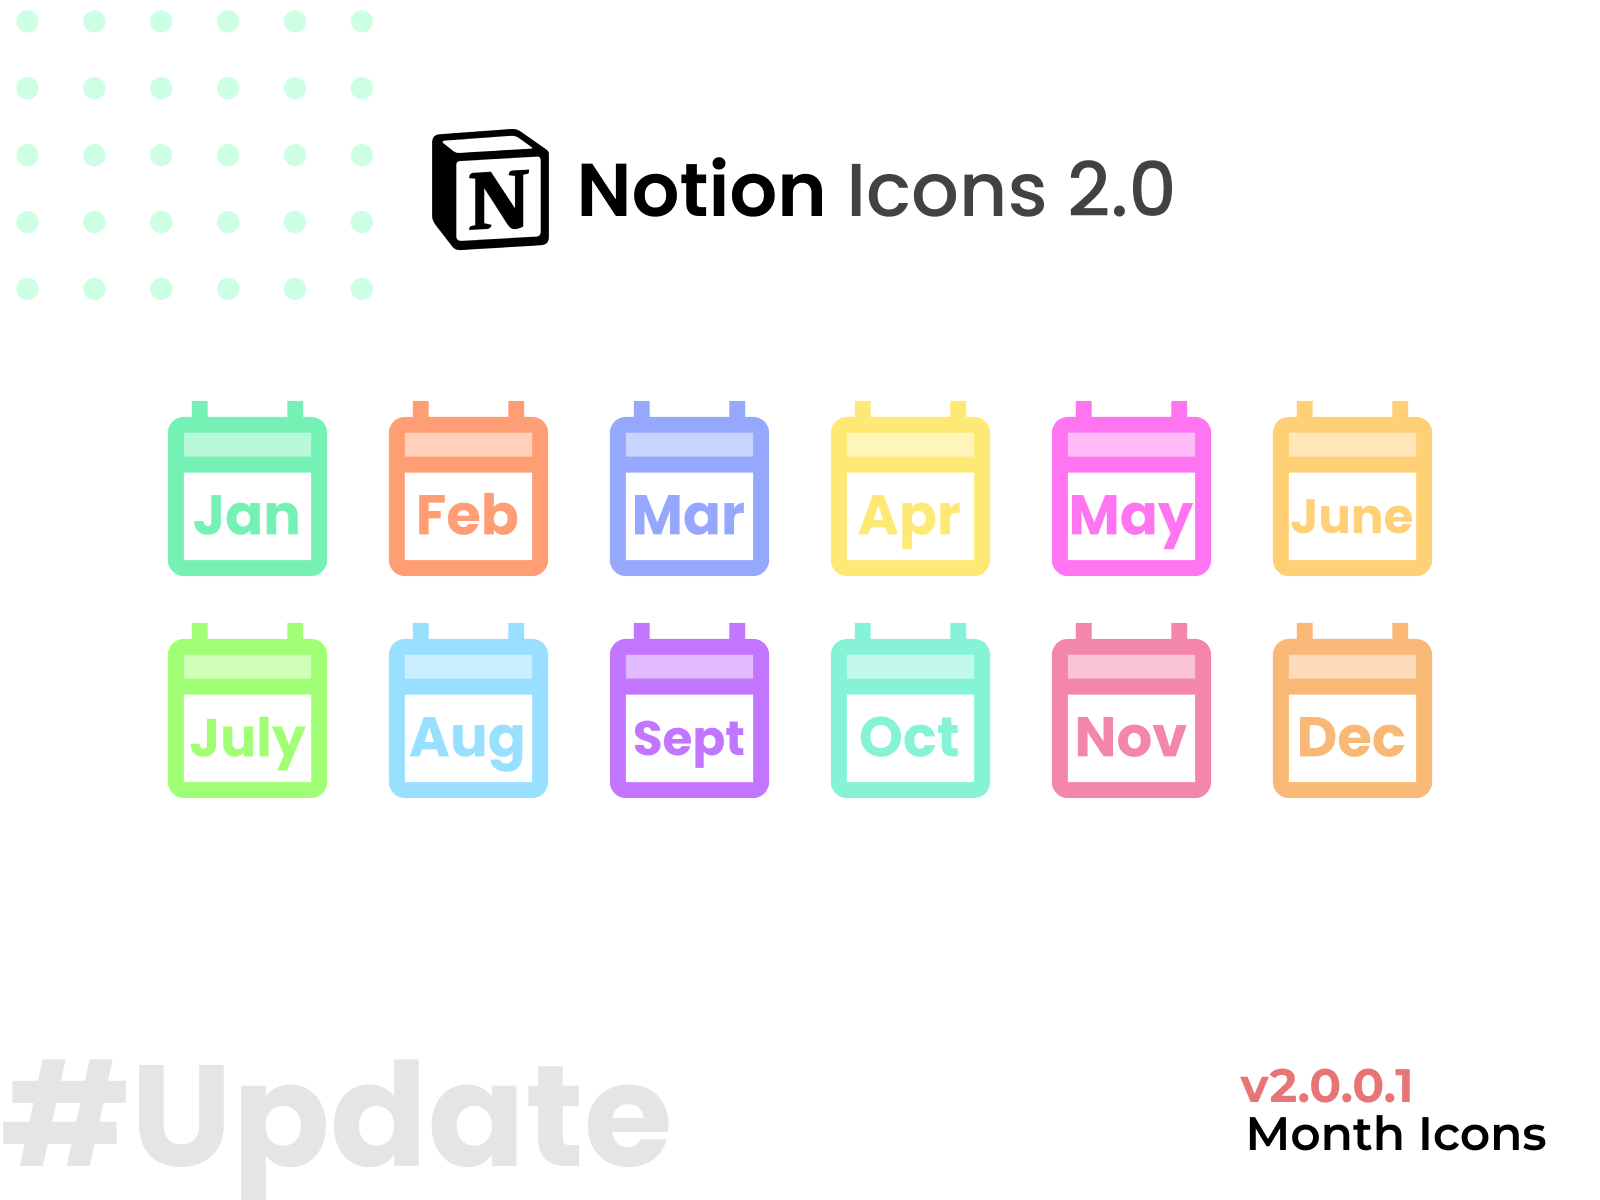 Notion Icons Update#2